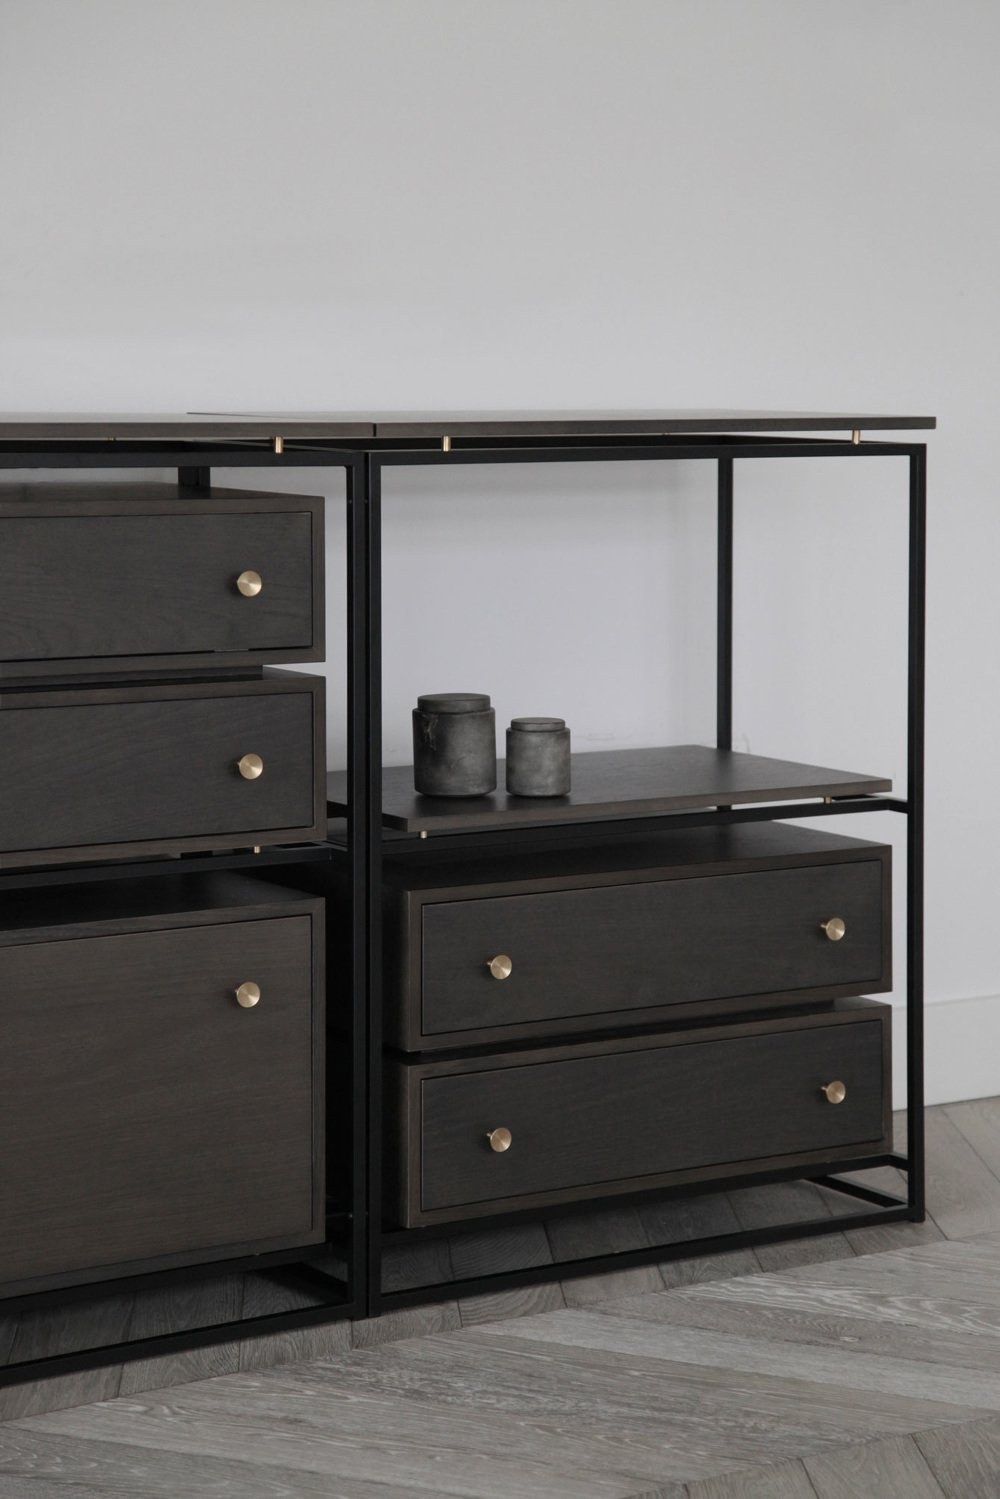 Photo 2 of 4 in Oda Storage System by Theresa Arns